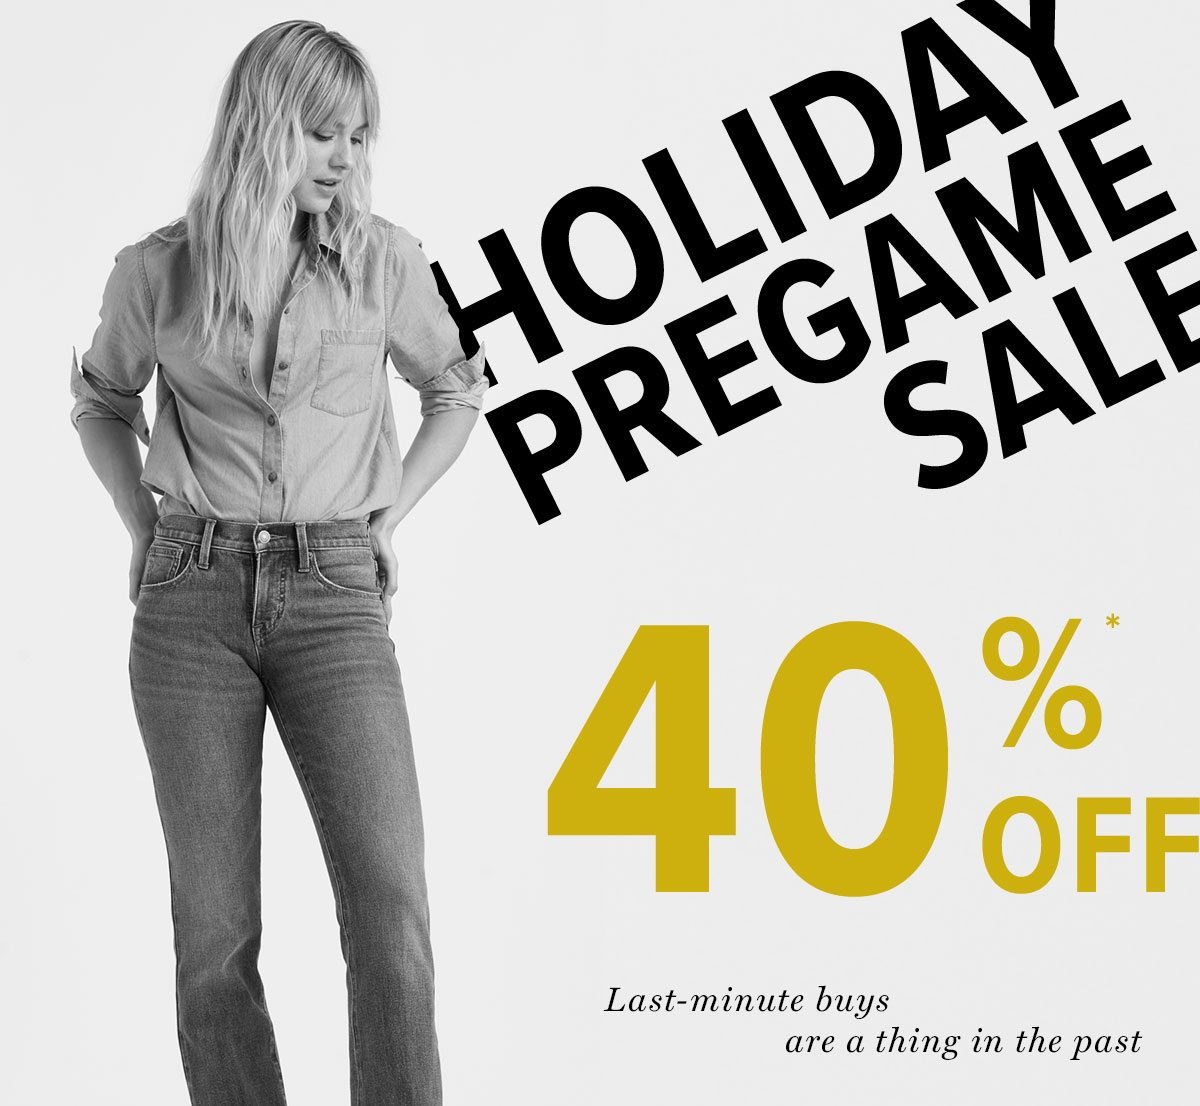 Shop Our Holiday Pregame Sale!*